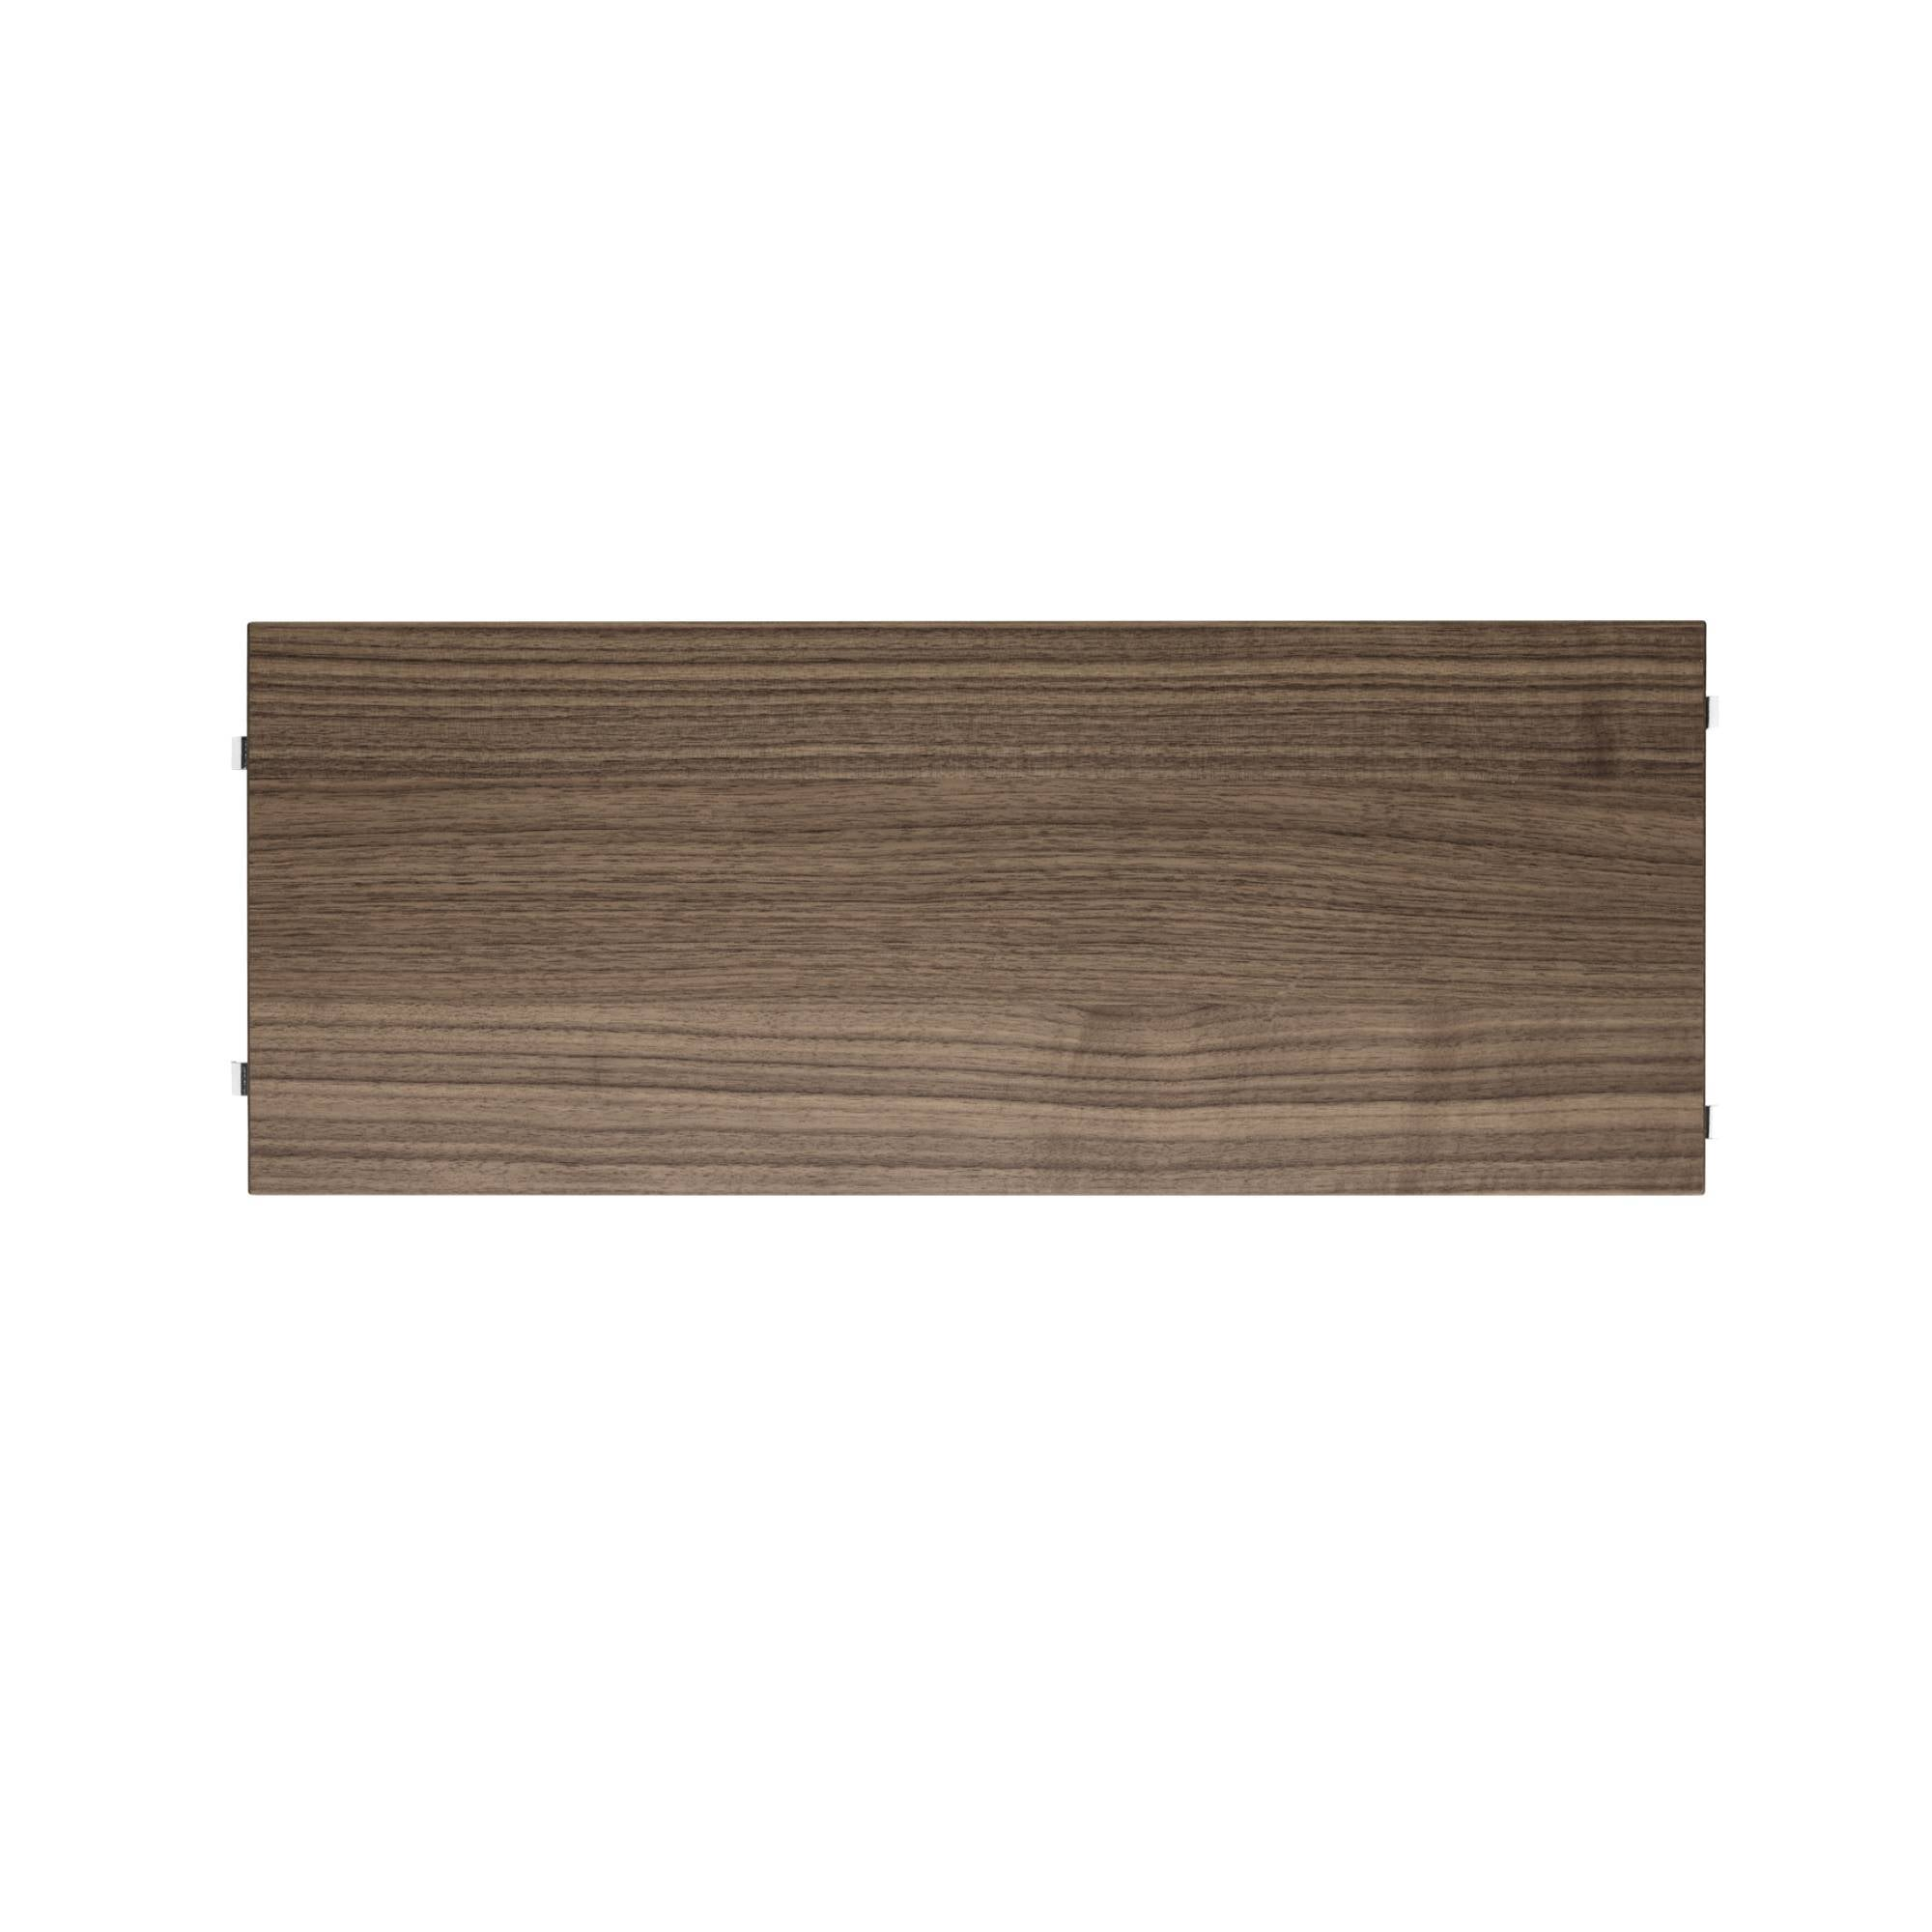 String System: Shelves (3-Pack) + 58 x 20 cm + Walnut